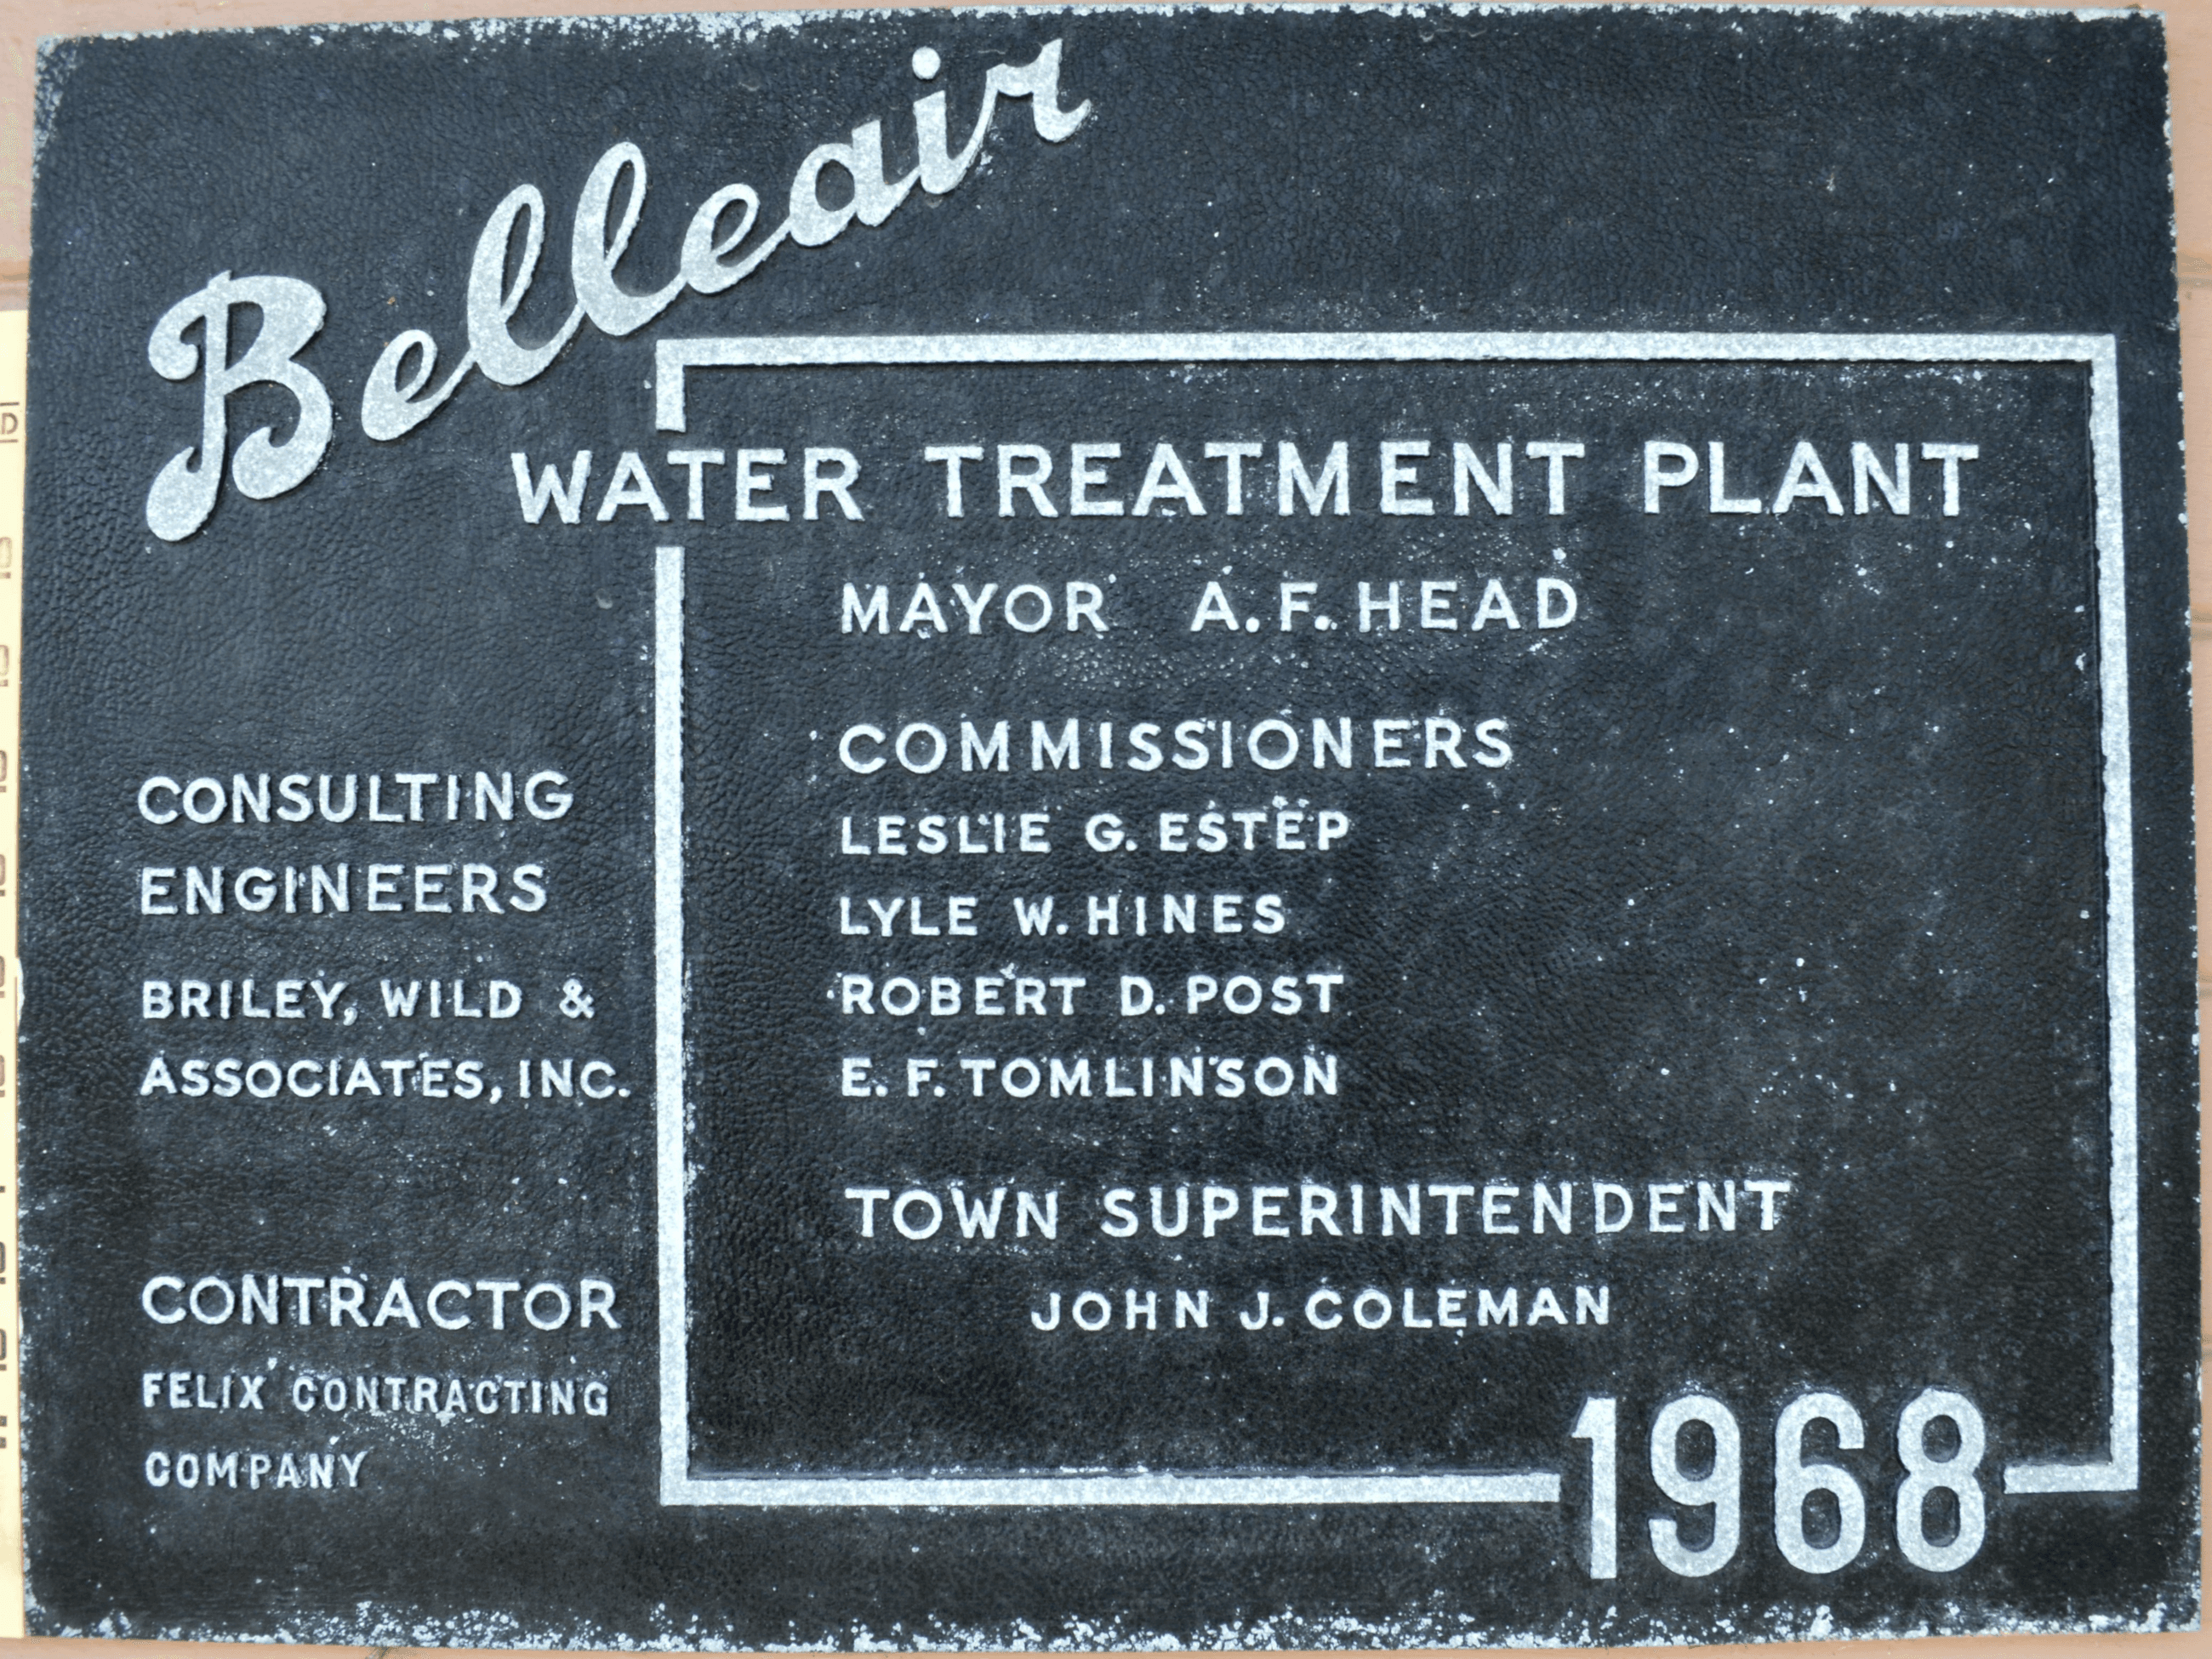 Dedication plaque hanging outside of Belleair's water plant.